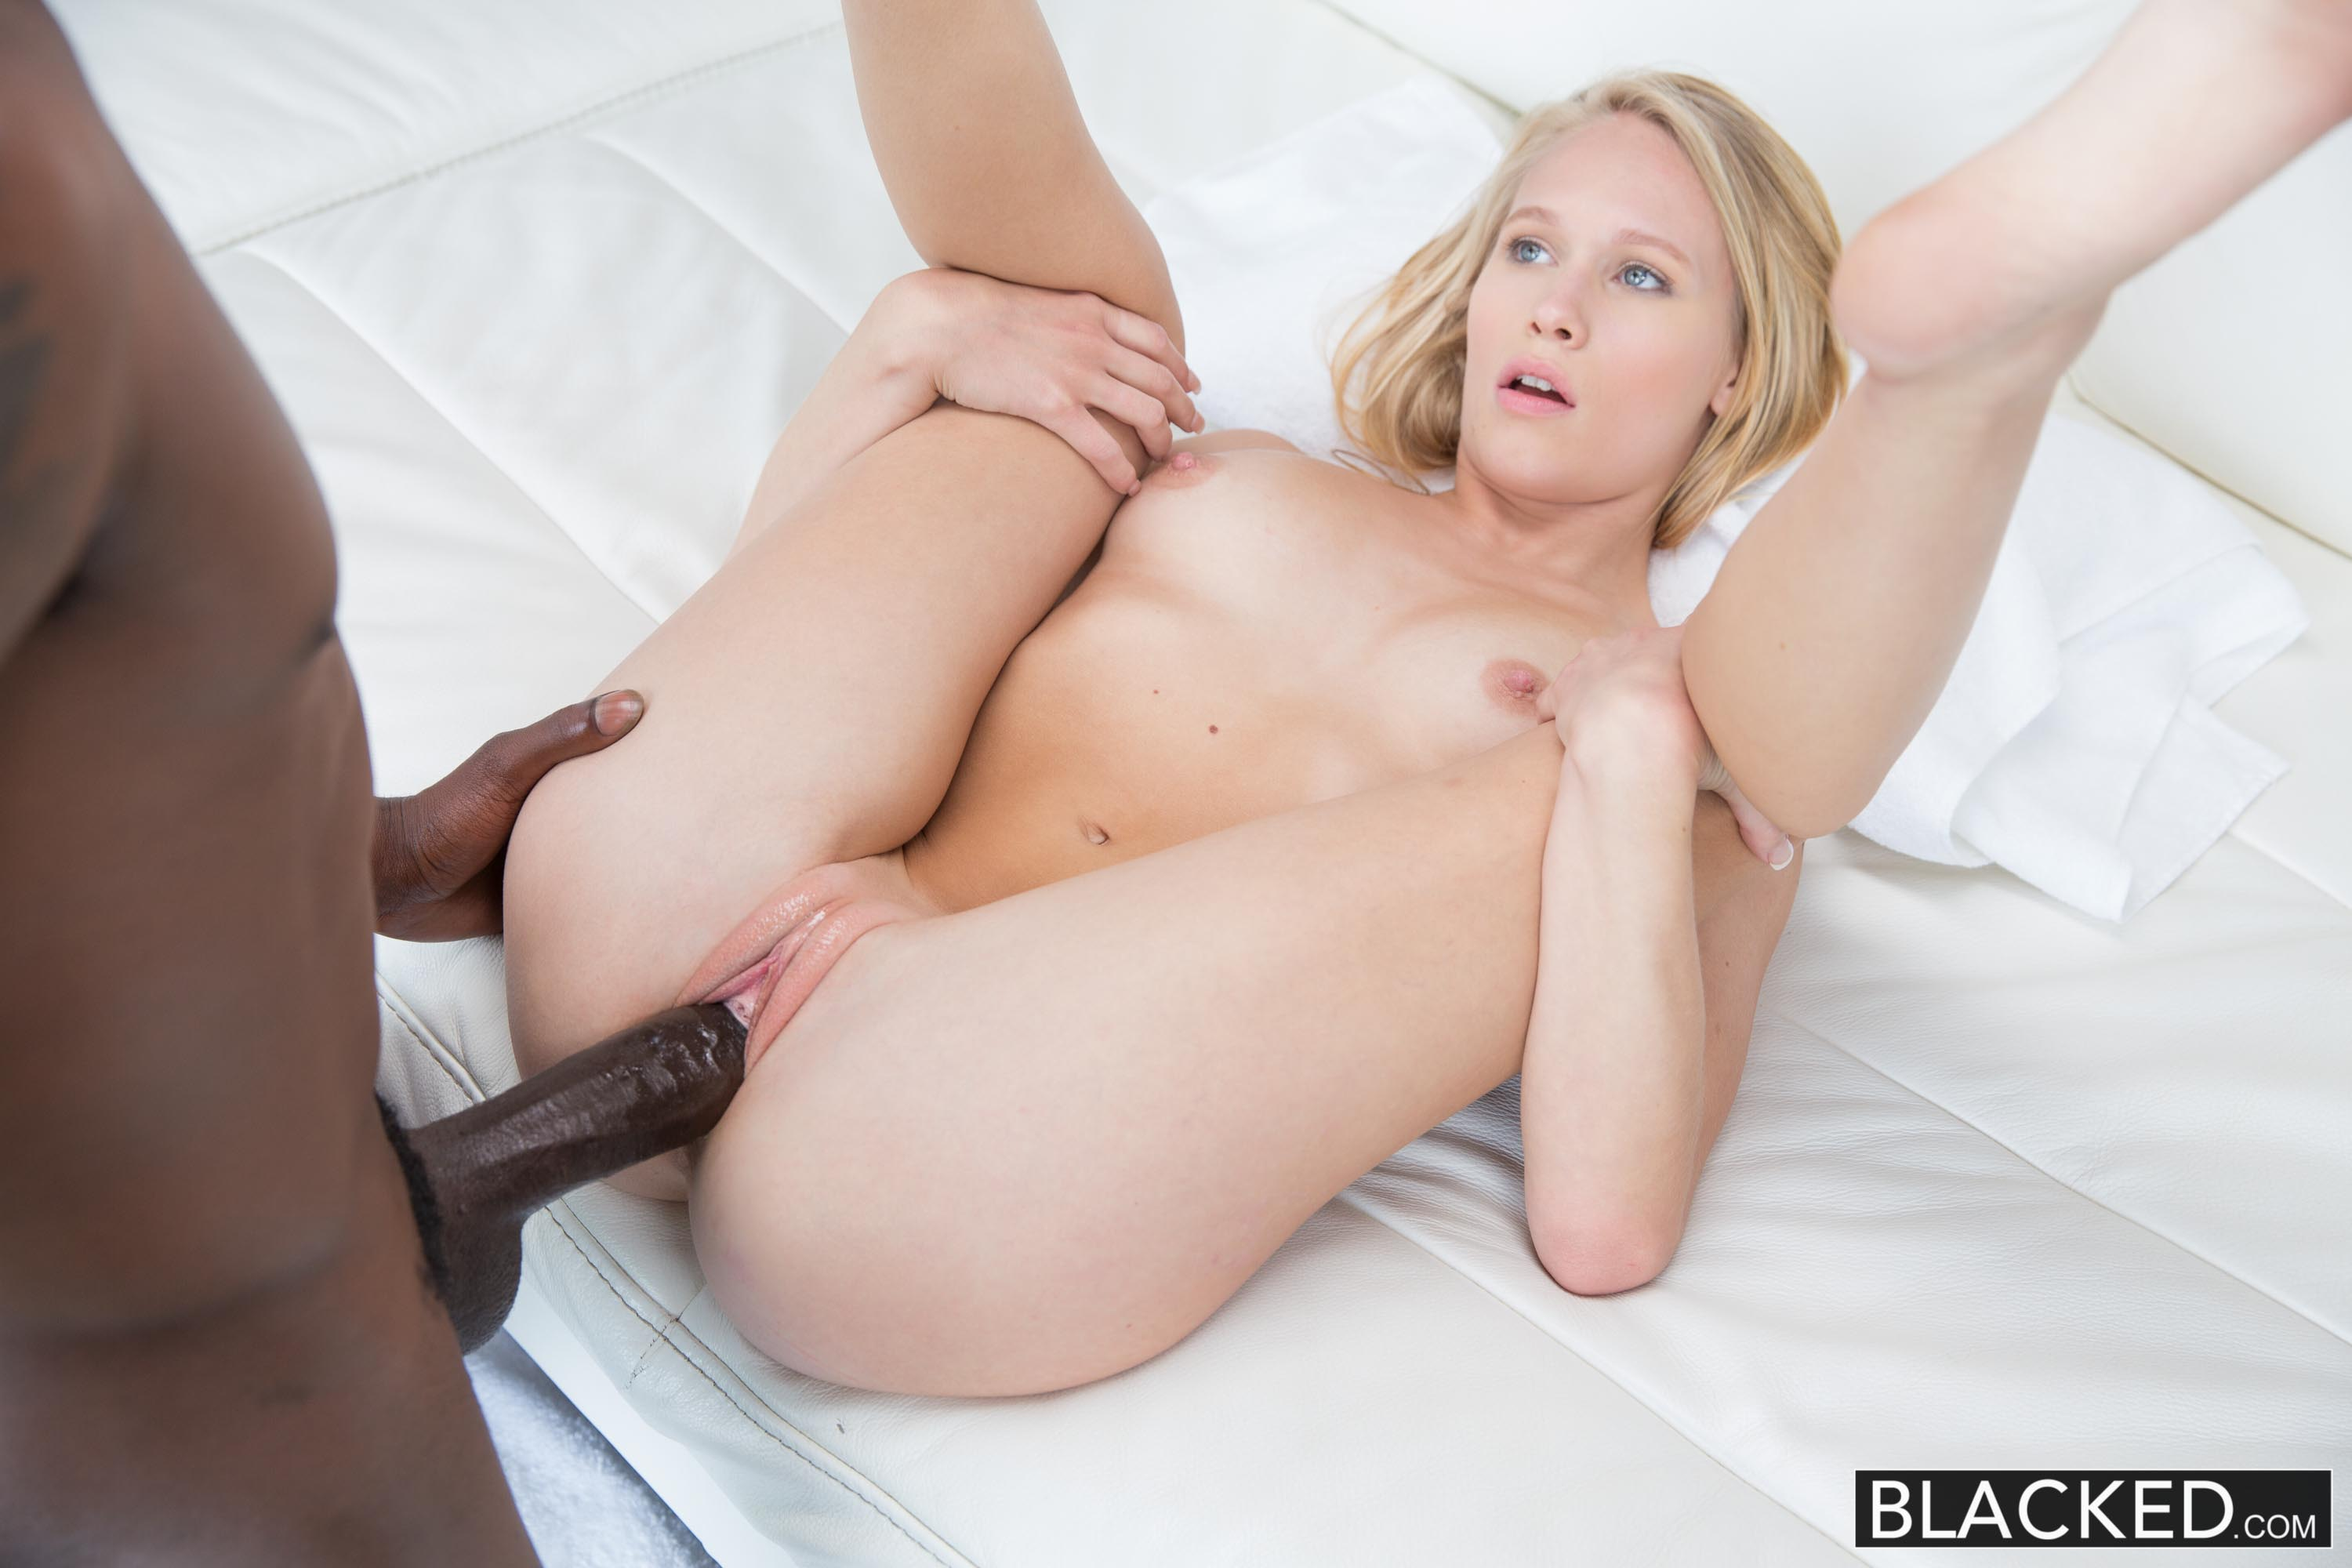 Monster cock sex gallery Hot Blondes First Big Cock Hot Sex Pics Best Xxx Photos And Free Porn Images On Www Levelporn Com